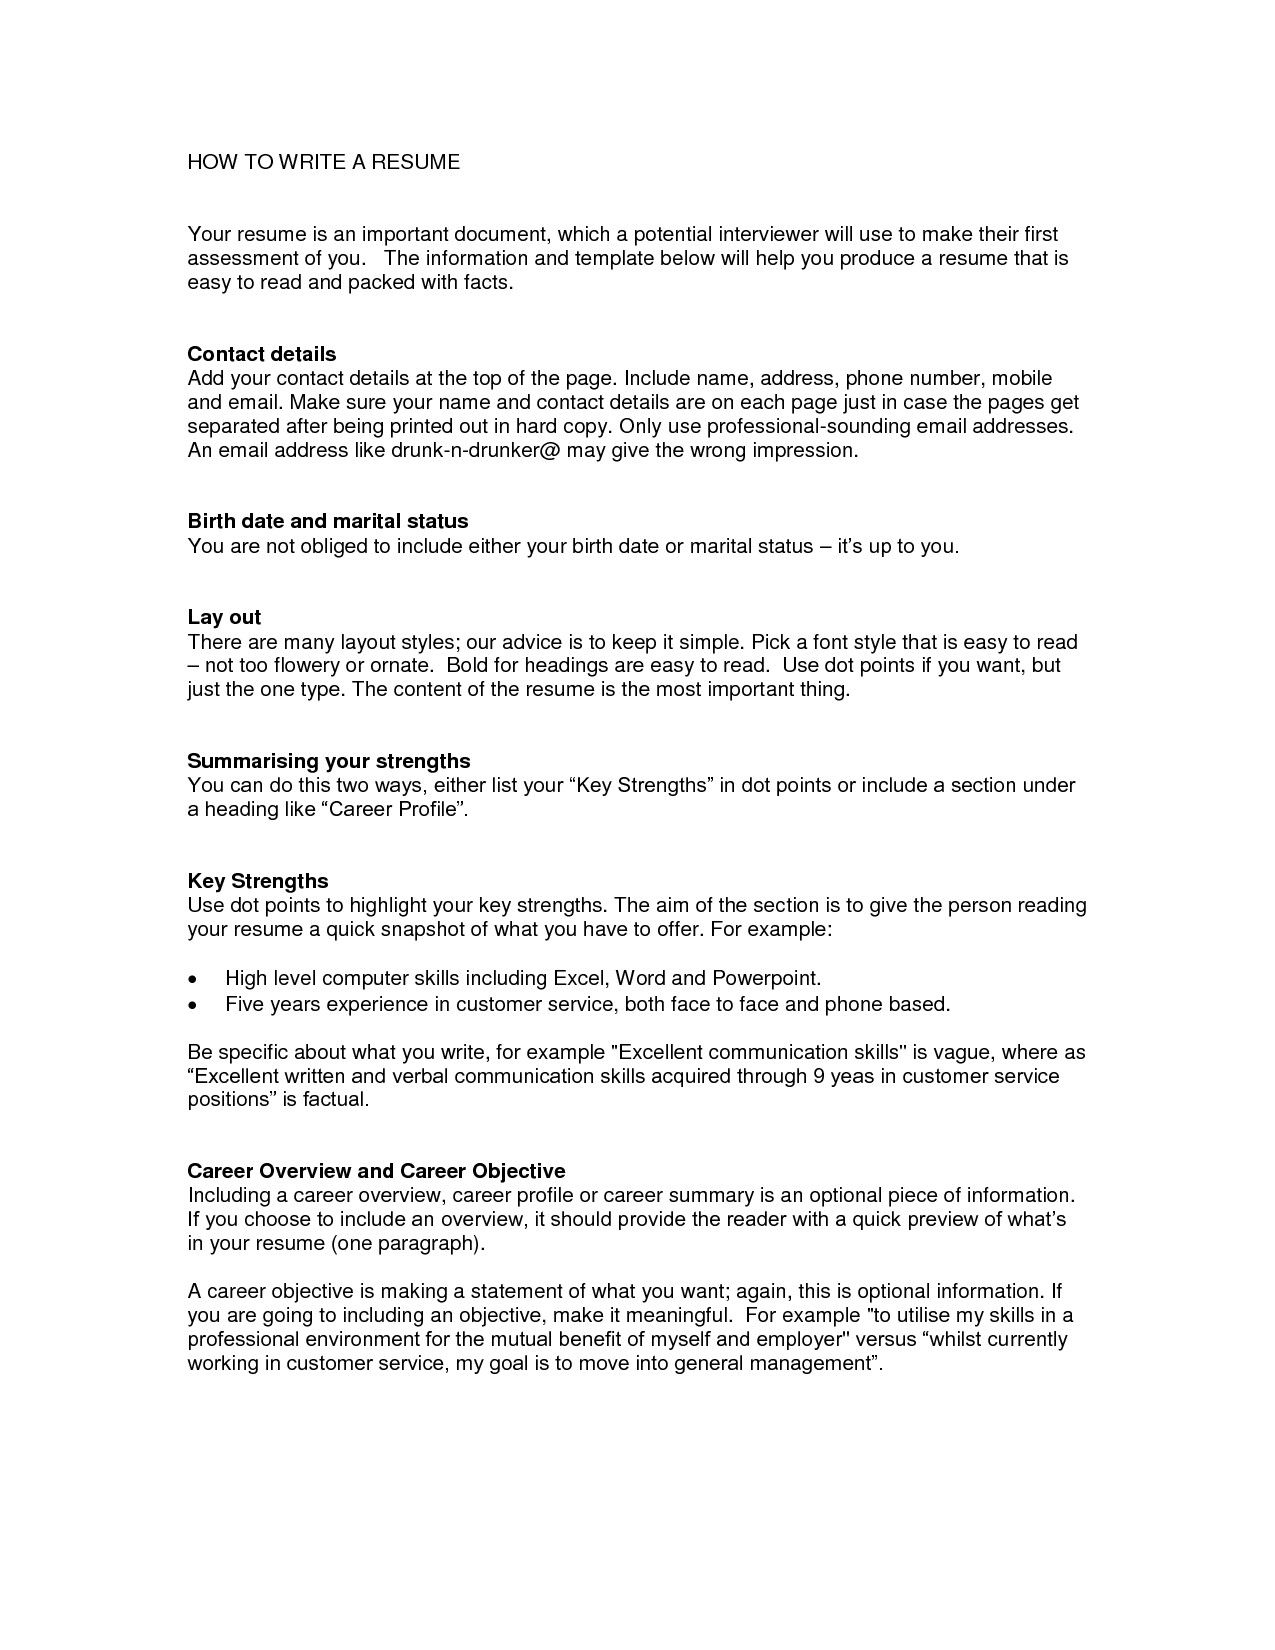 Putting Address On Resume How to Write A Resume Net the